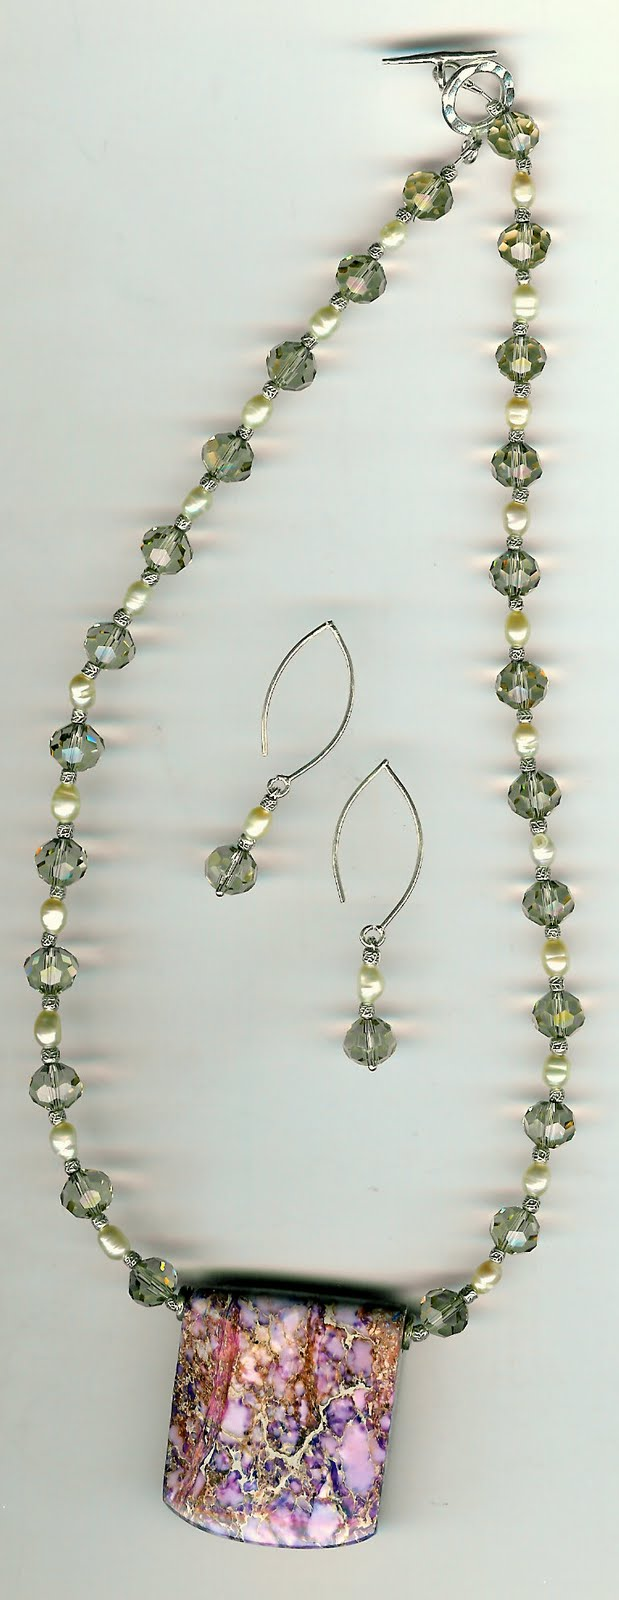 218. Pendent, with Crystals, Rice Pearls and Thai Sterling Silver with Earrings